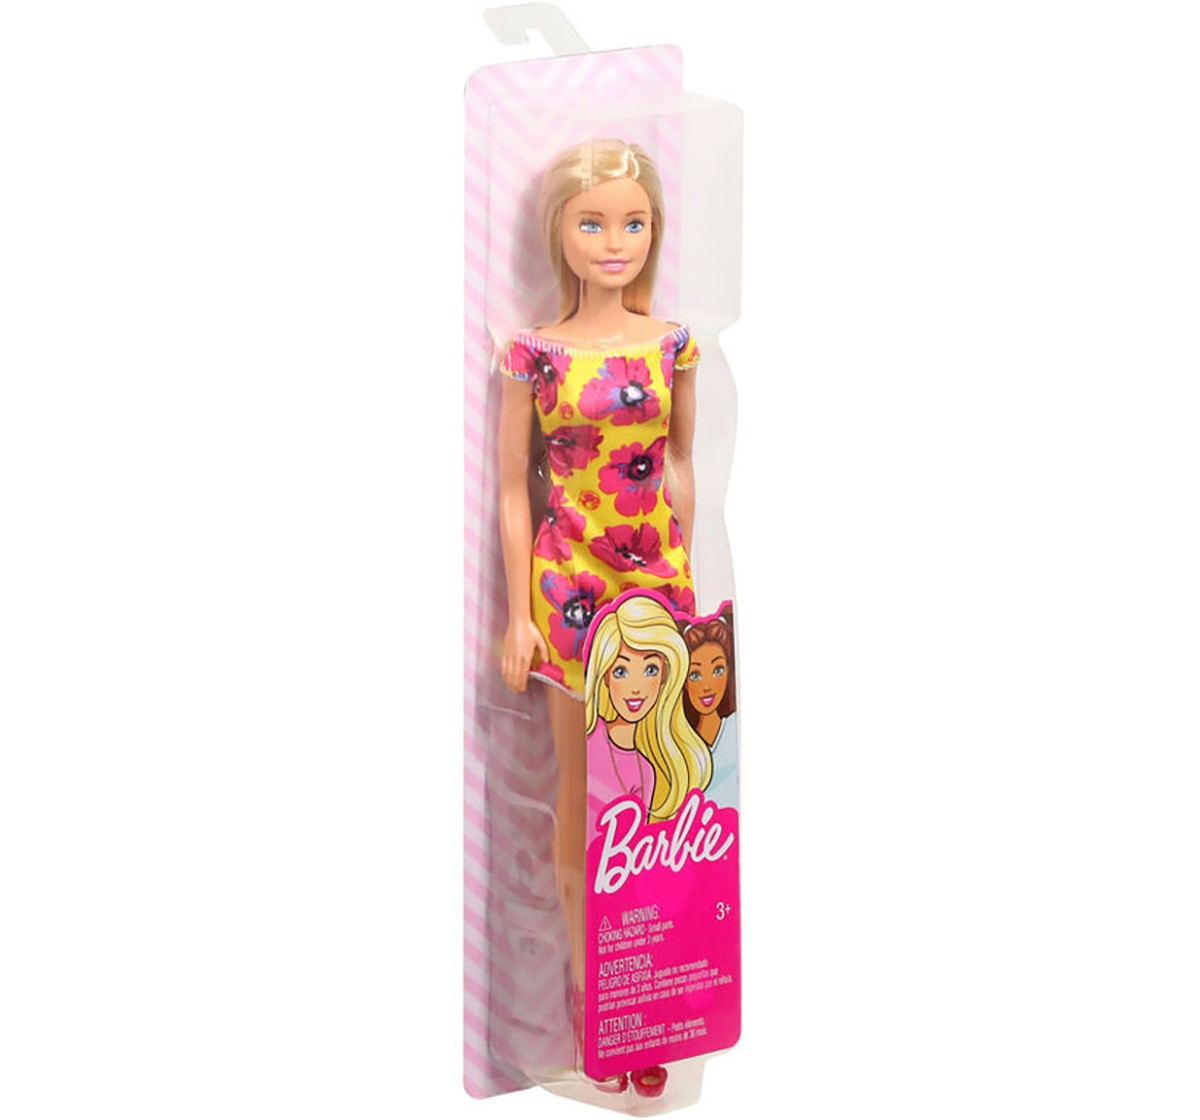 Barbie Doll With Floral Dress, Dolls & Accessories ( Assorted) for Girls age 3Y+ (Any one doll)